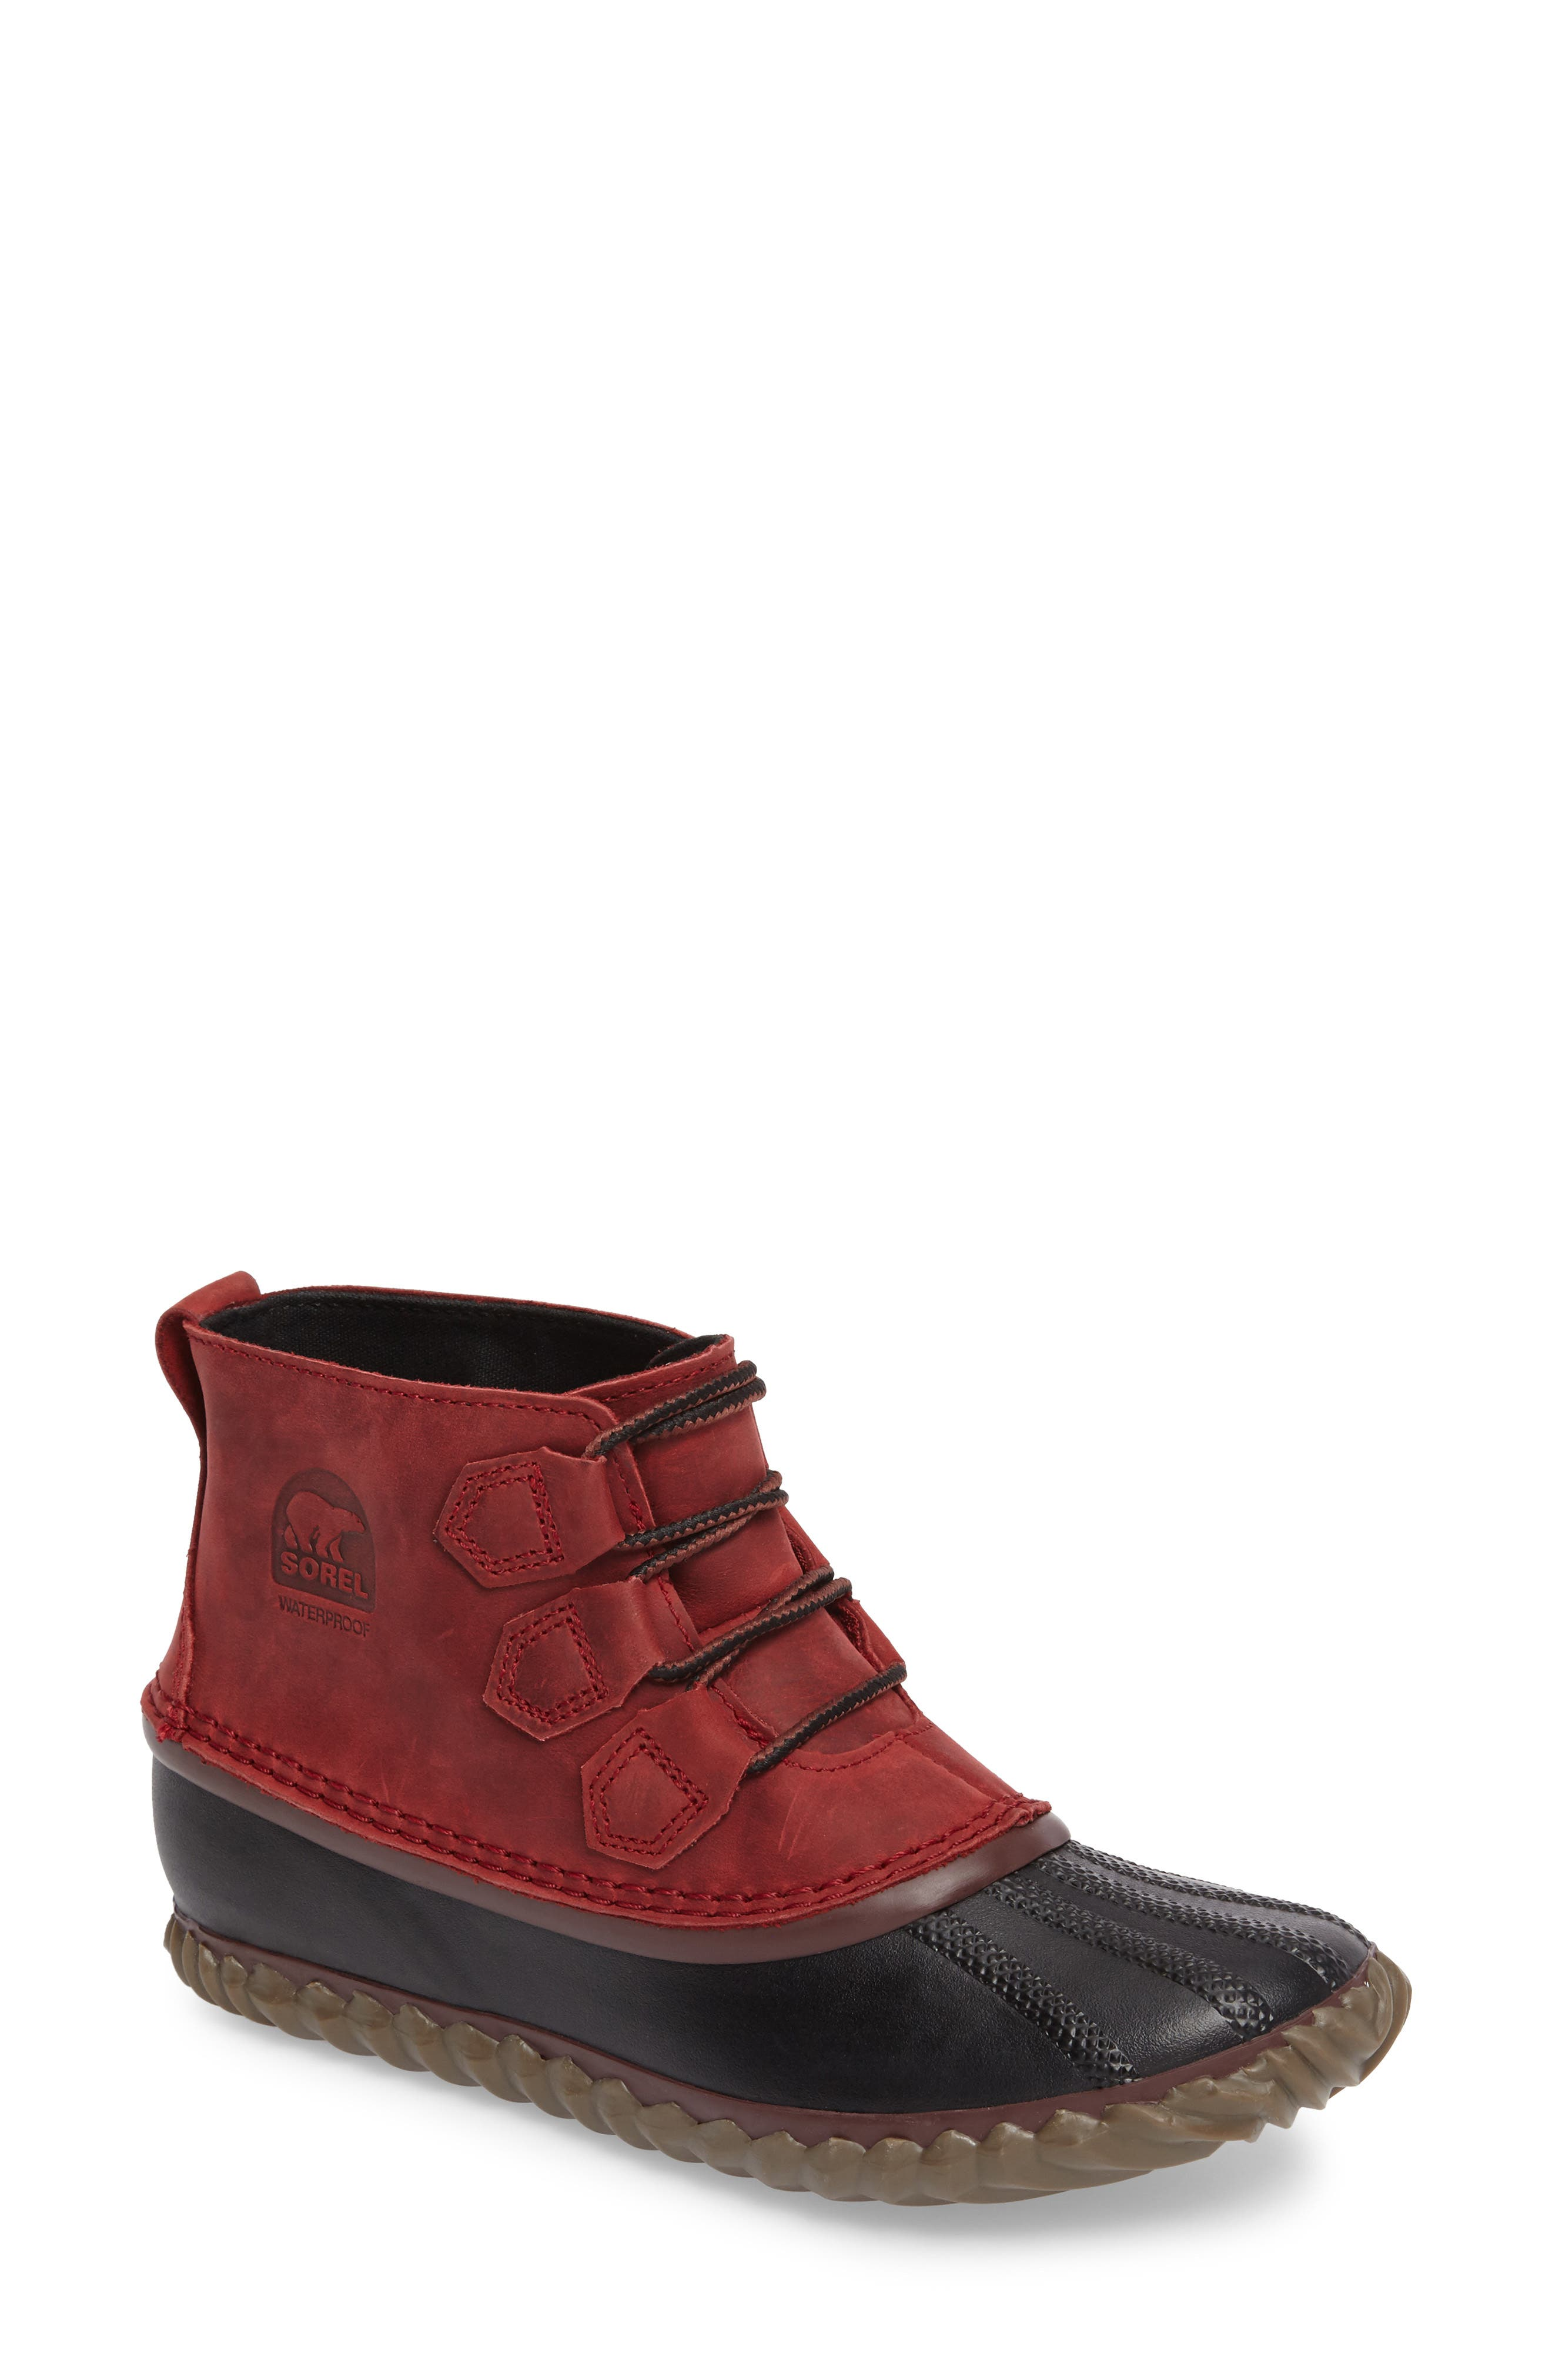 'Out N About' Leather Boot,                             Main thumbnail 1, color,                             Red Element